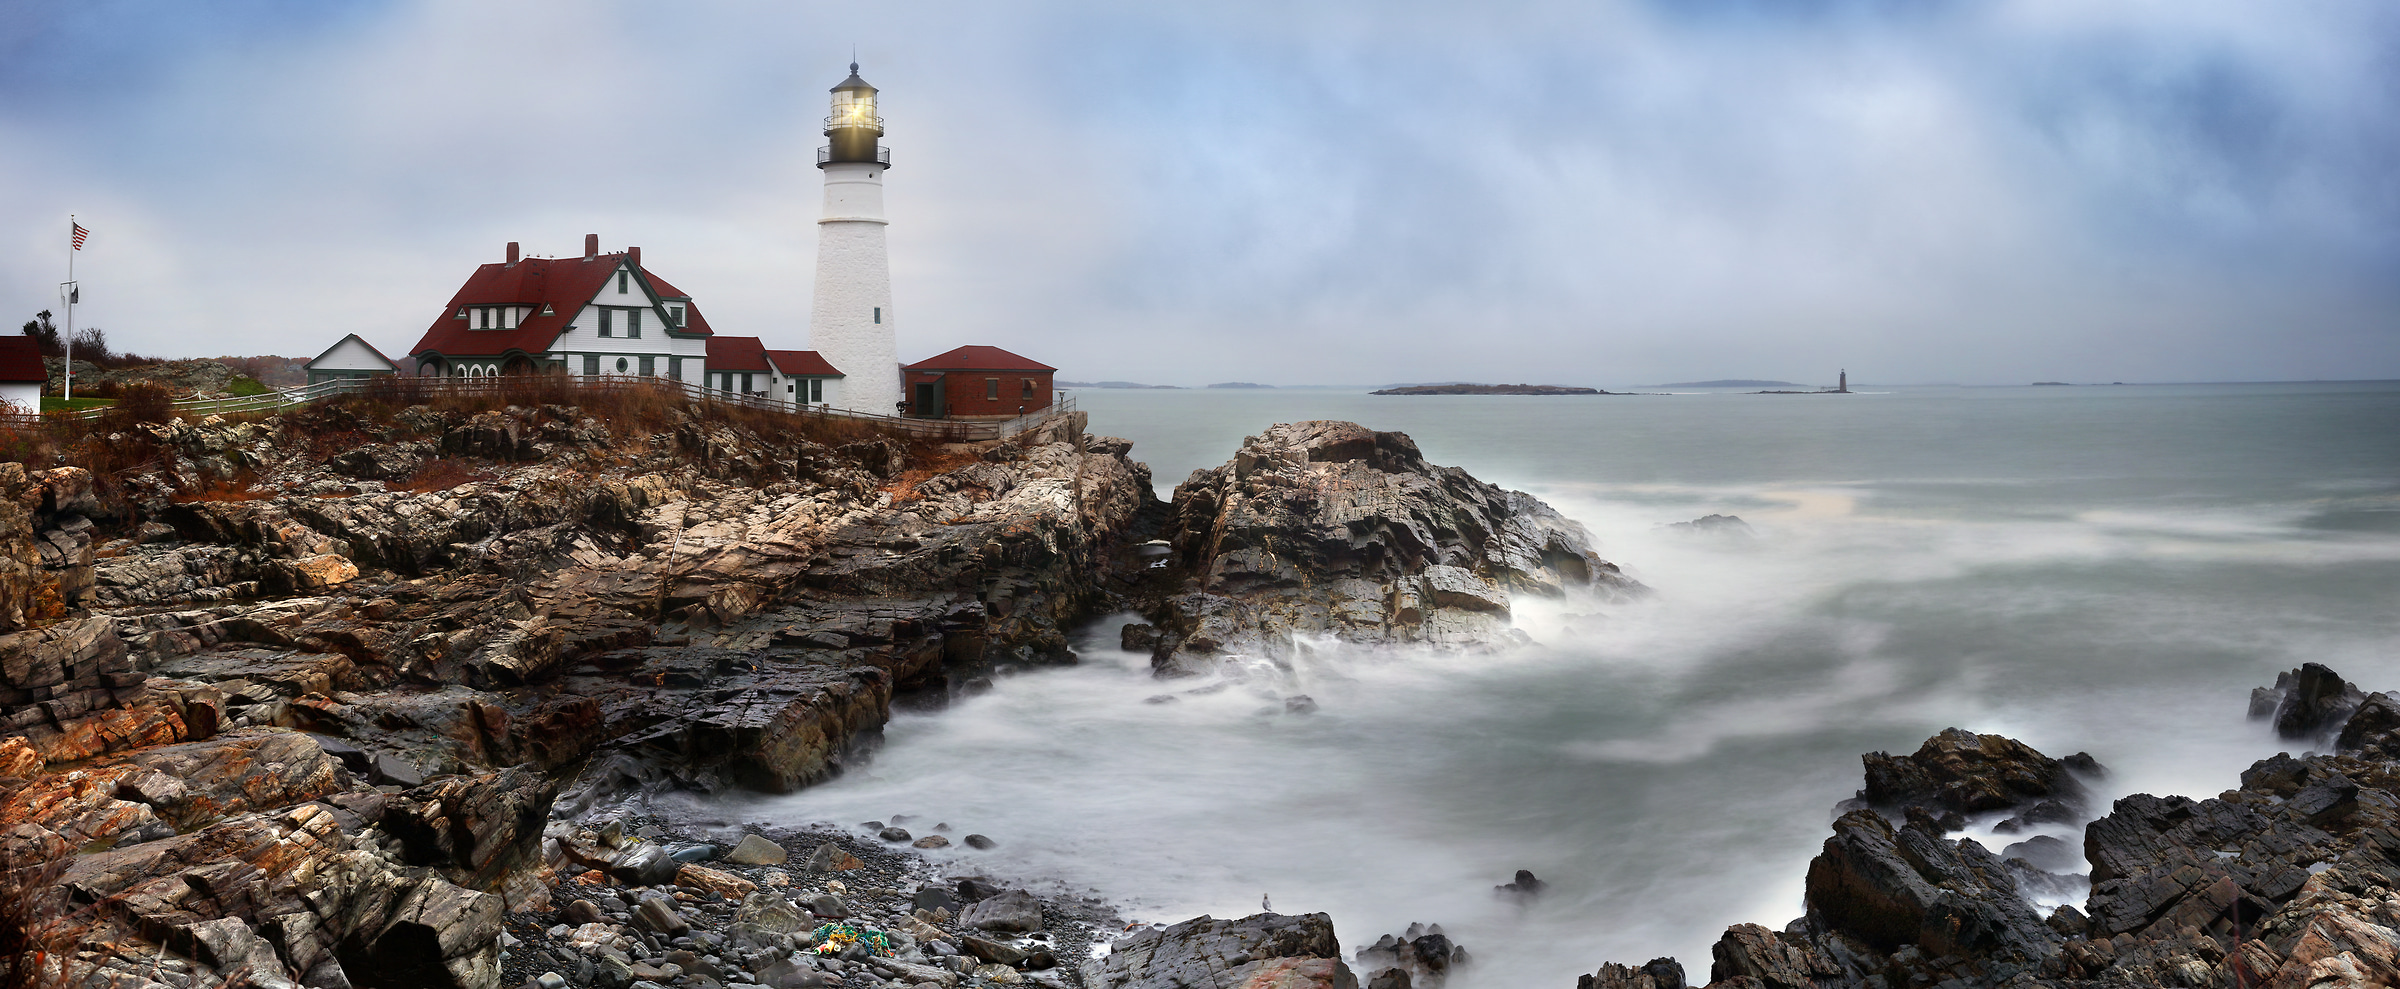 521 megapixels! A very high resolution, large-format VAST photo print of a lighthouse with the ocean and rocks; photograph created by Phil Crawshay in Portland Head Lighthouse, Portland, Maine